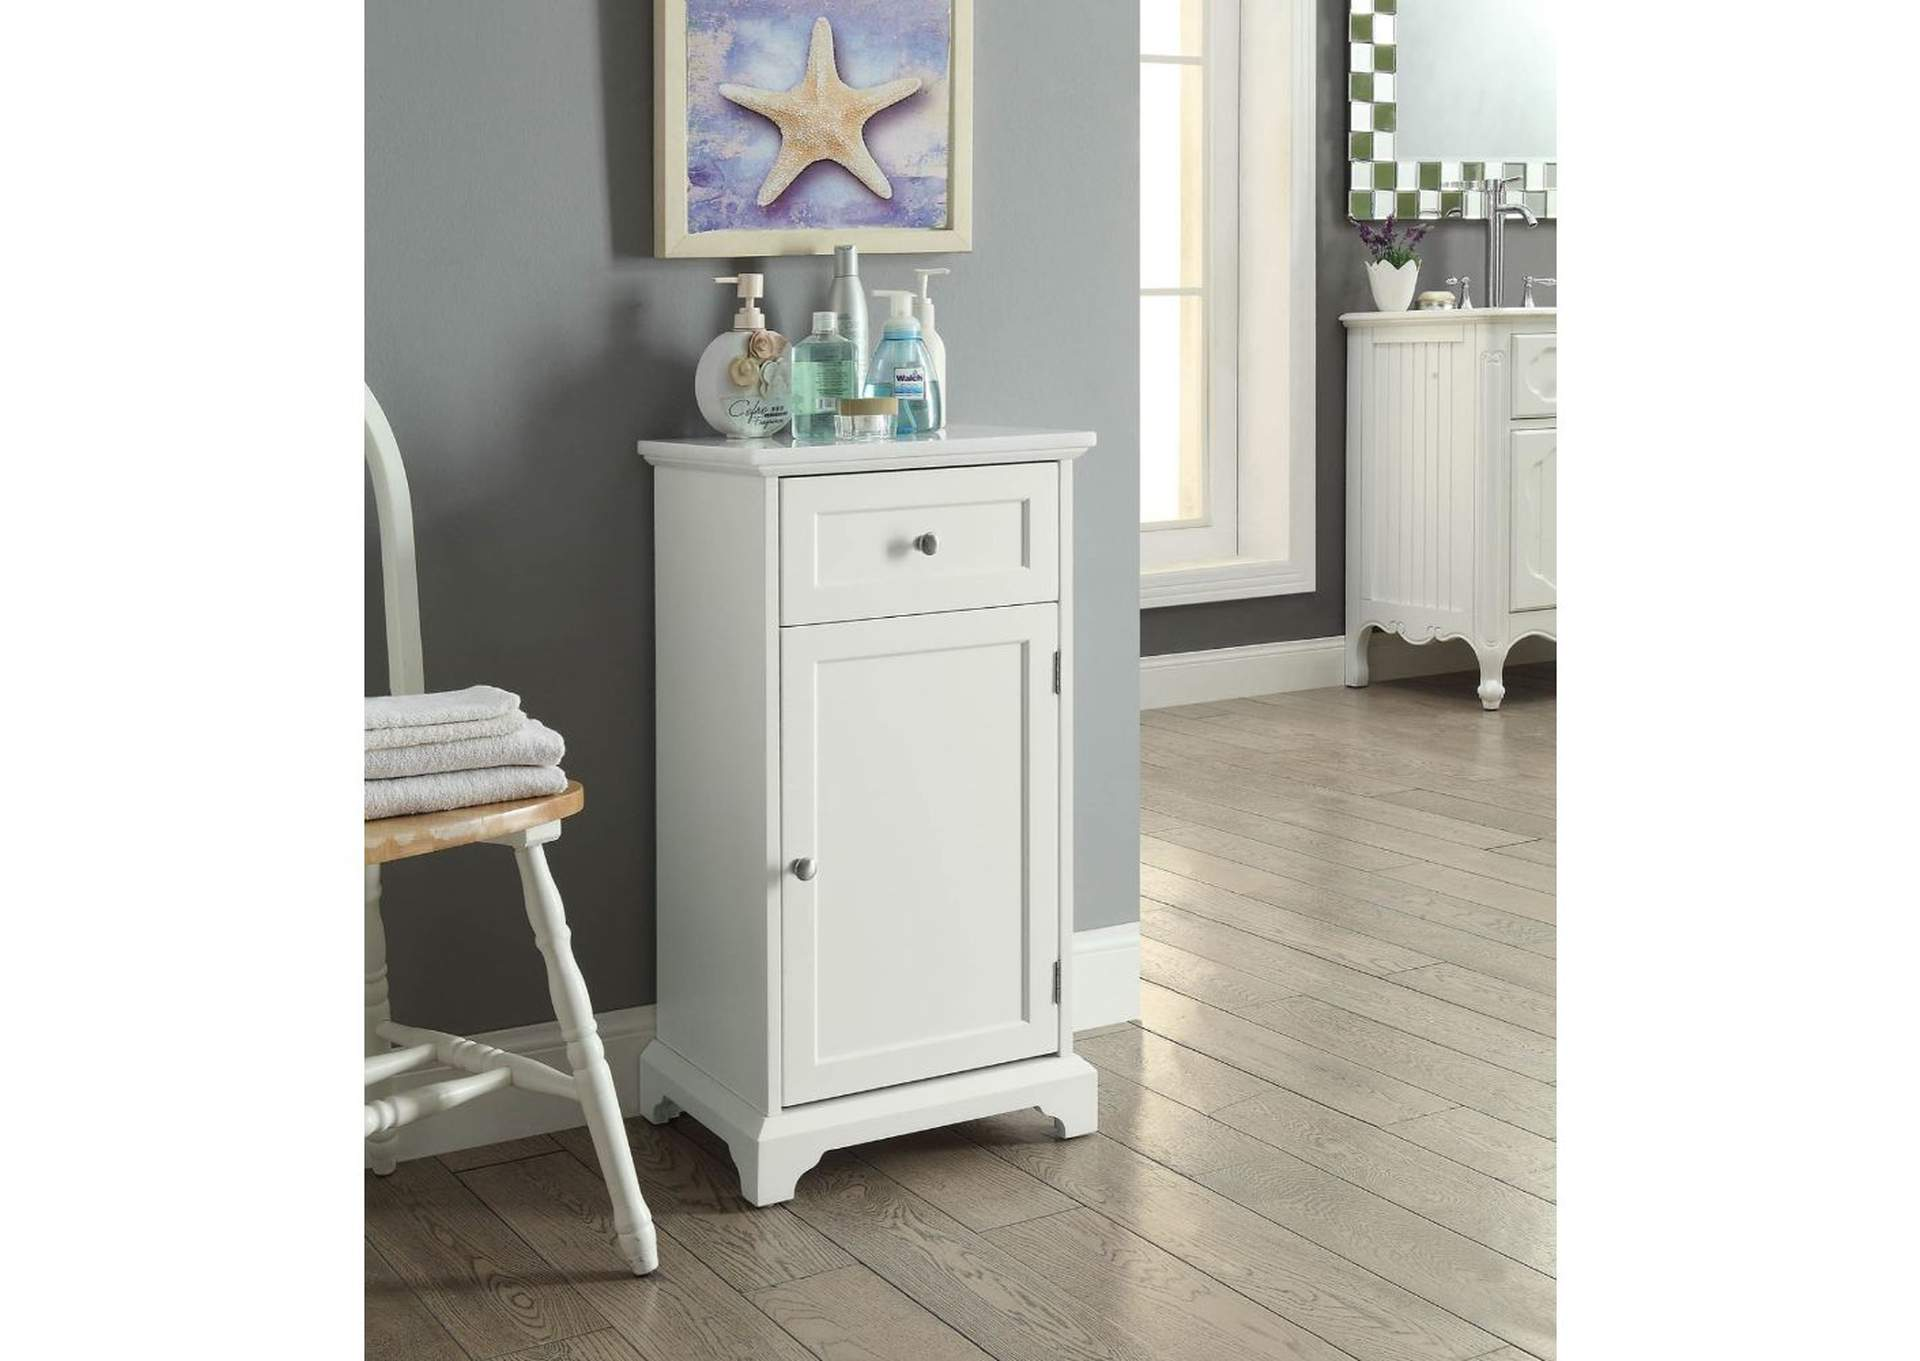 Simes Marble & White Cabinet,Acme